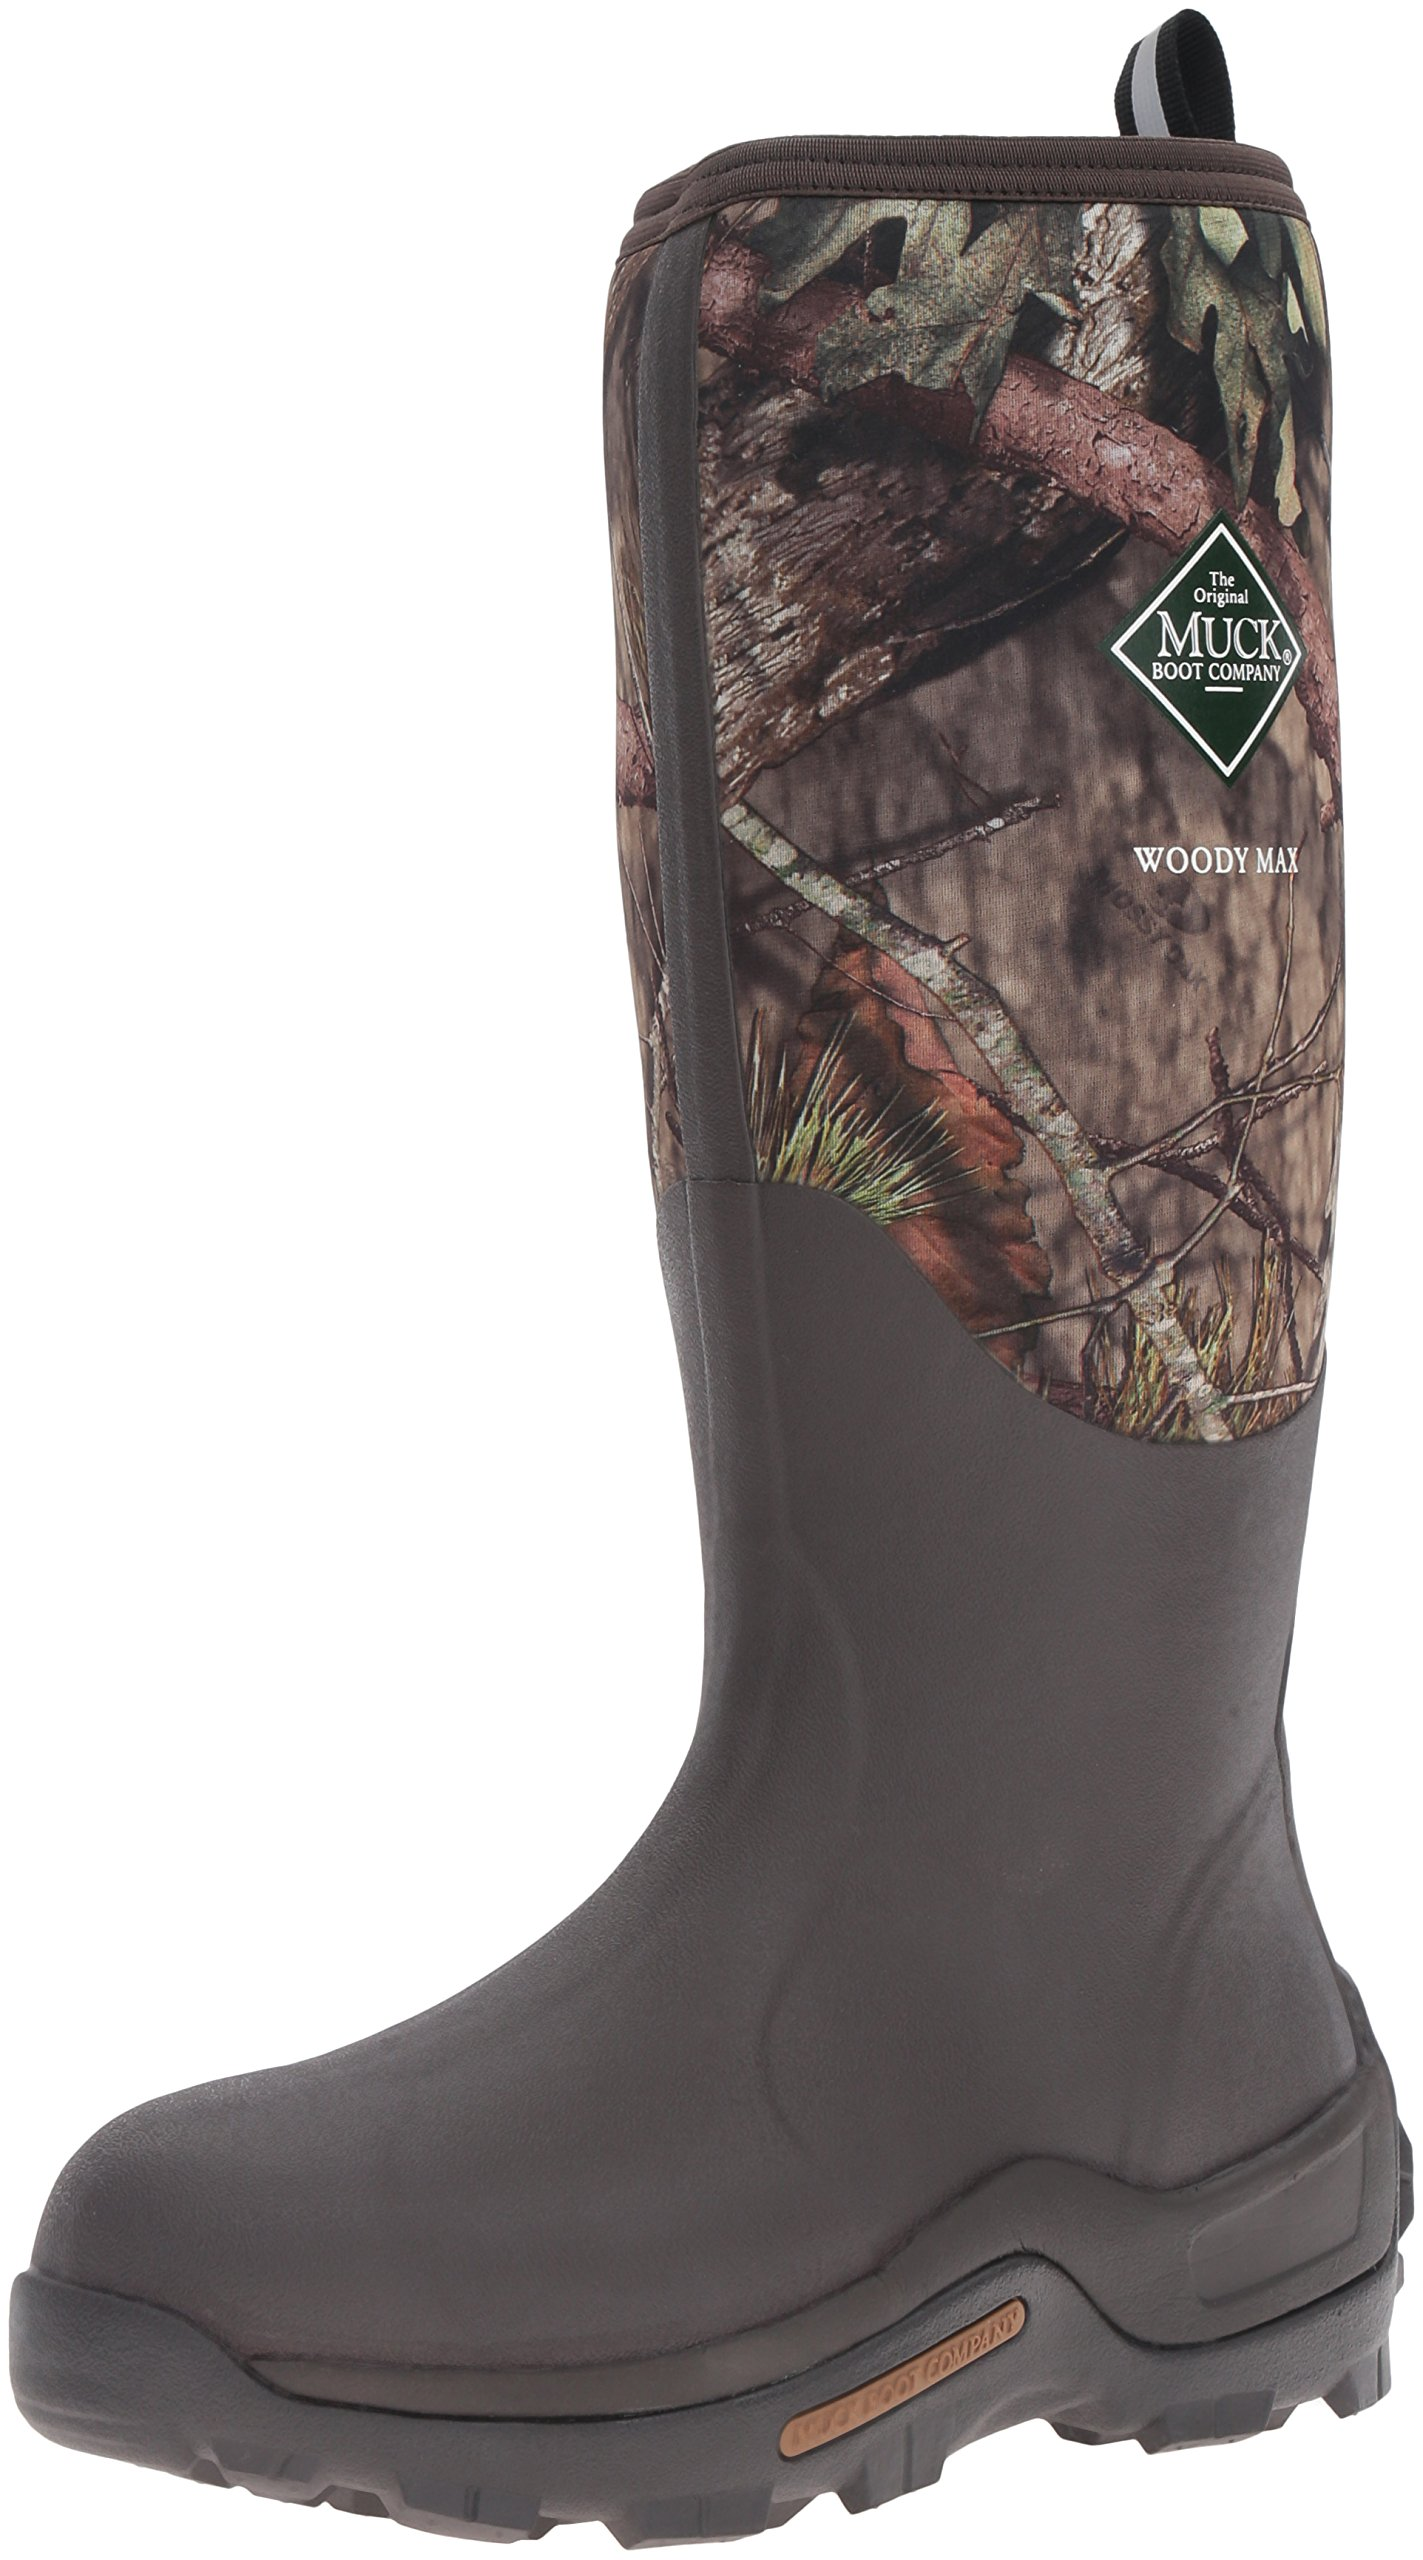 Muck Boot Men's Woody Max Hunting Shoes, Mossy Oak, 10 US/10-10.5 M US